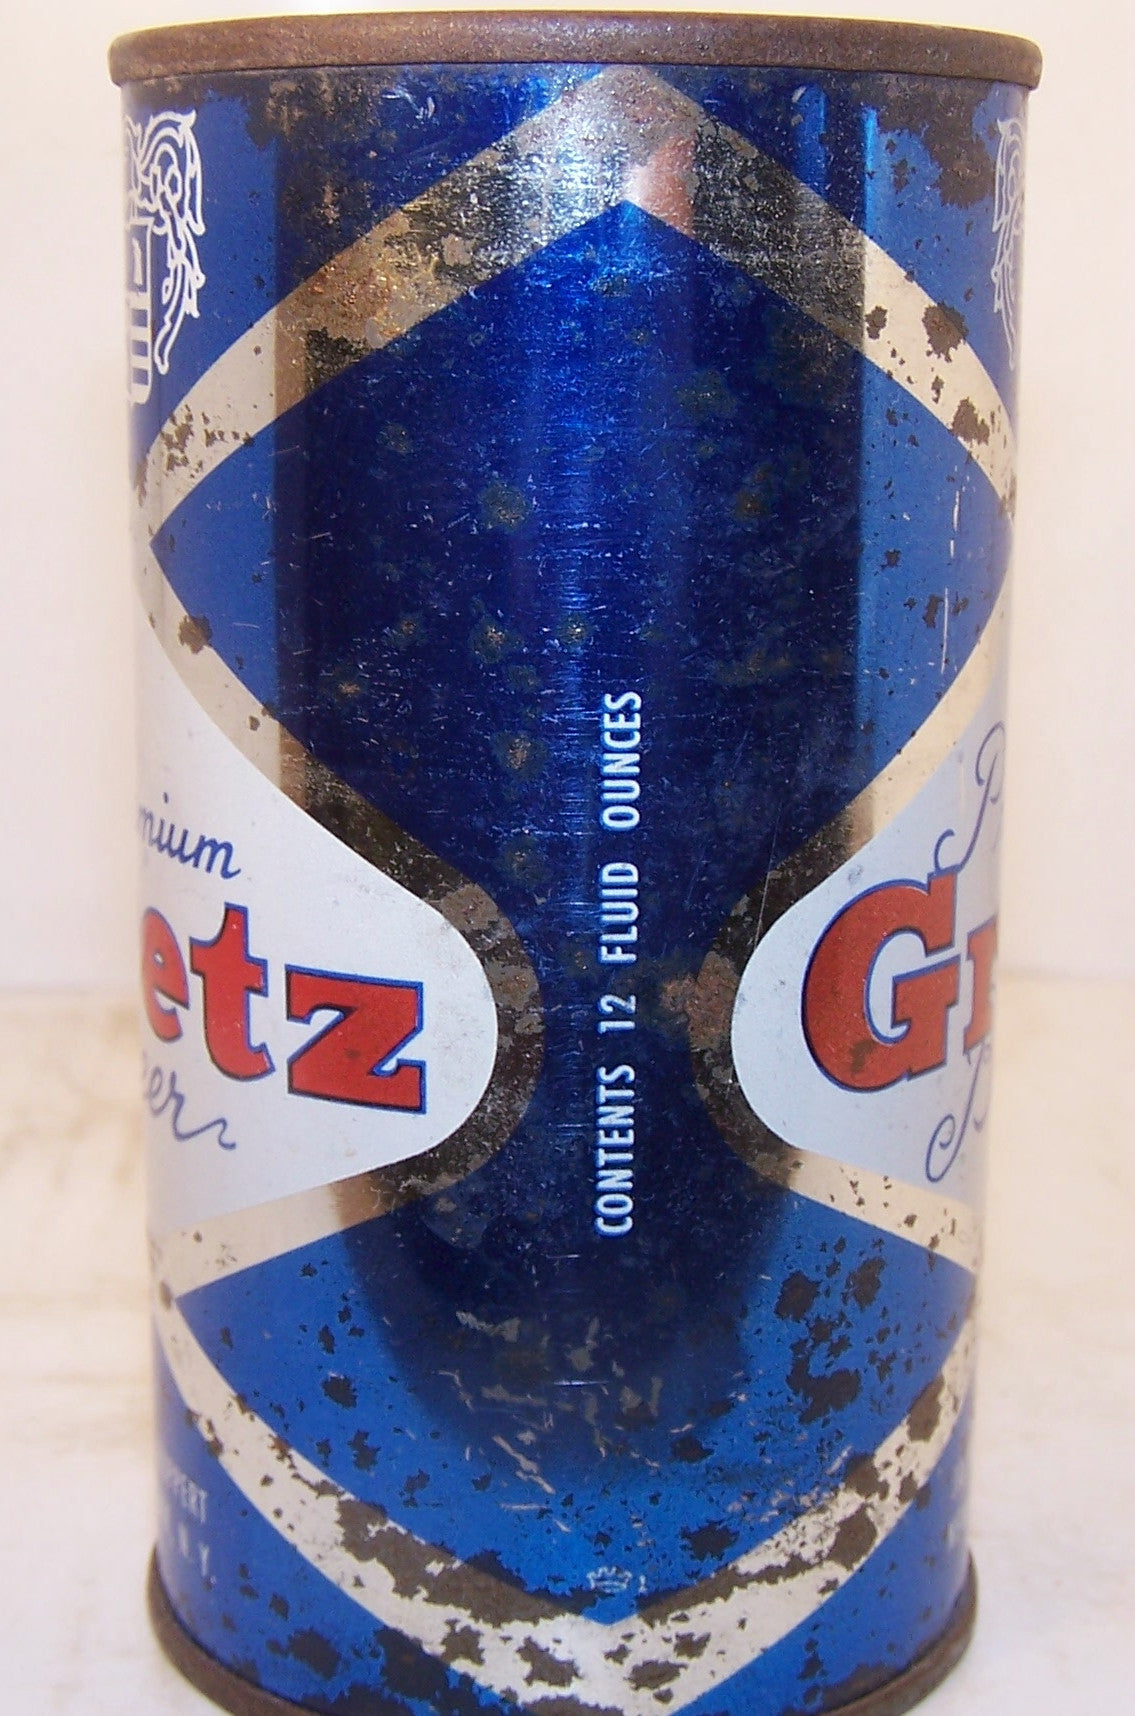 Gretz premium beer, USBC N.L Jacob Ruppert Brewing, New York, Grade 1- Sold 8/20/15